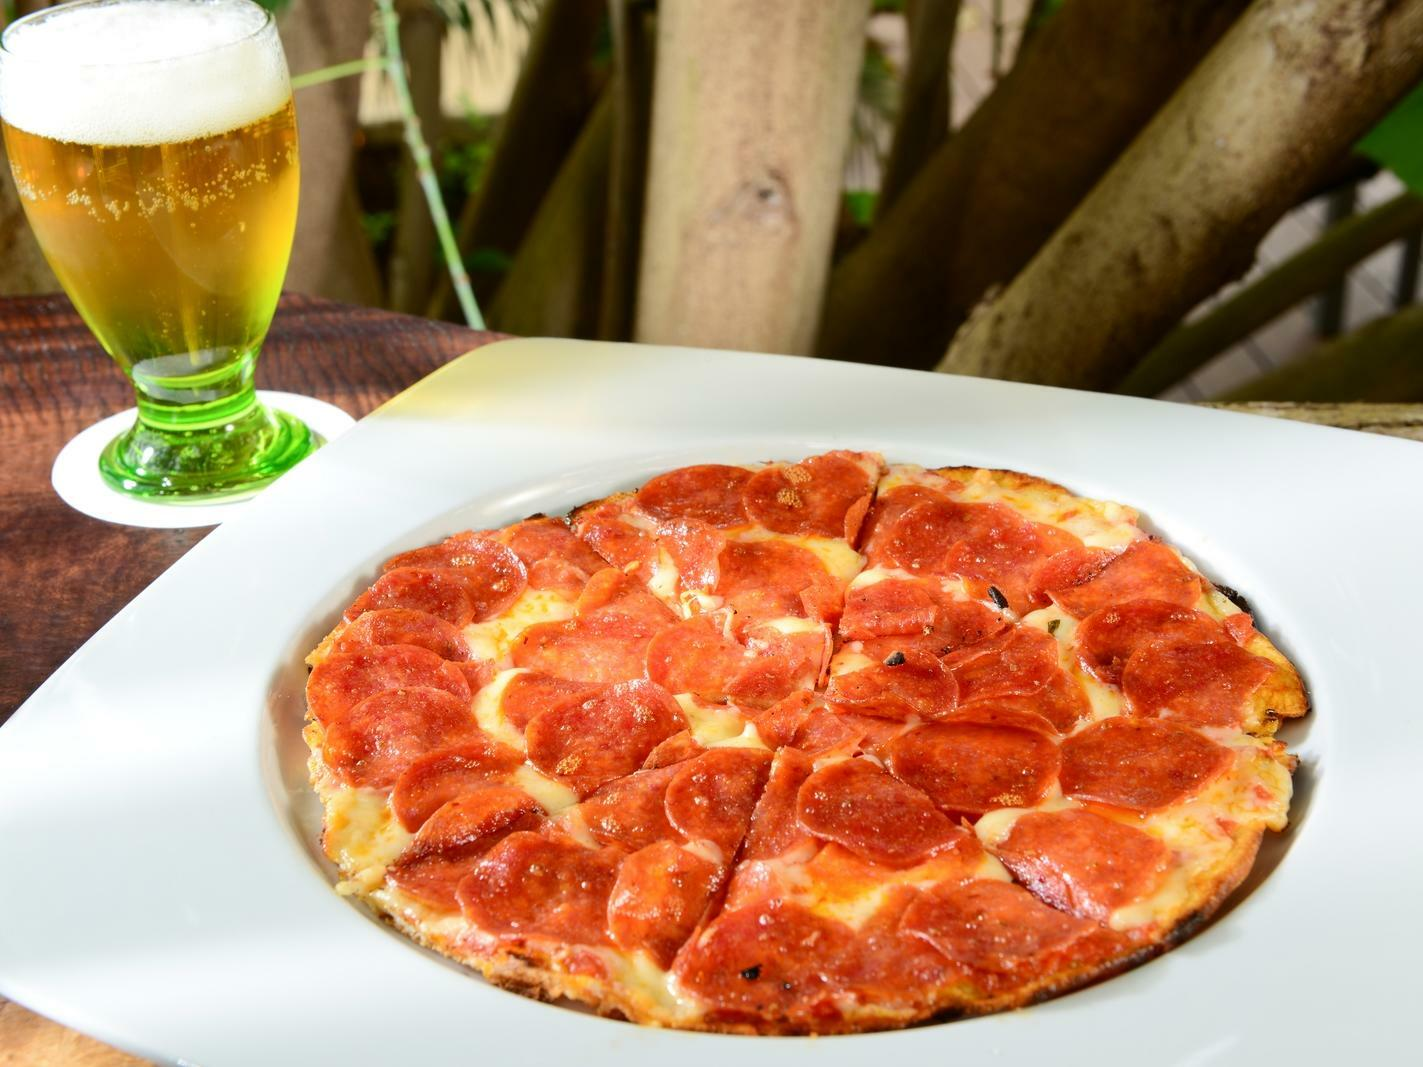 pizza on a white plate with beer glass